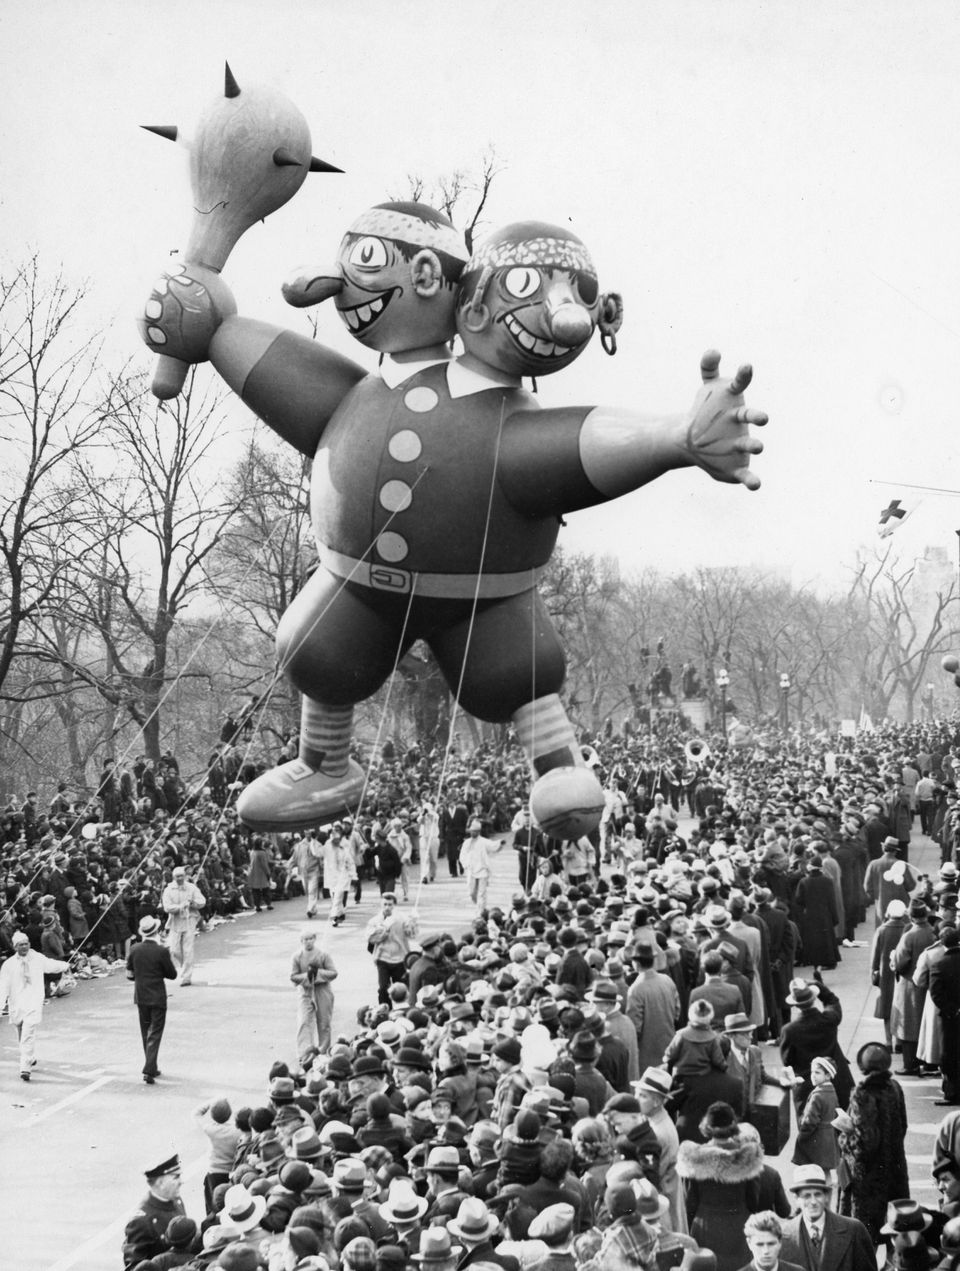 The two-headed pirate balloon traveled along the route during the Santason parade in Boston on Thanksgiving Day, Nov. 25, 1937.